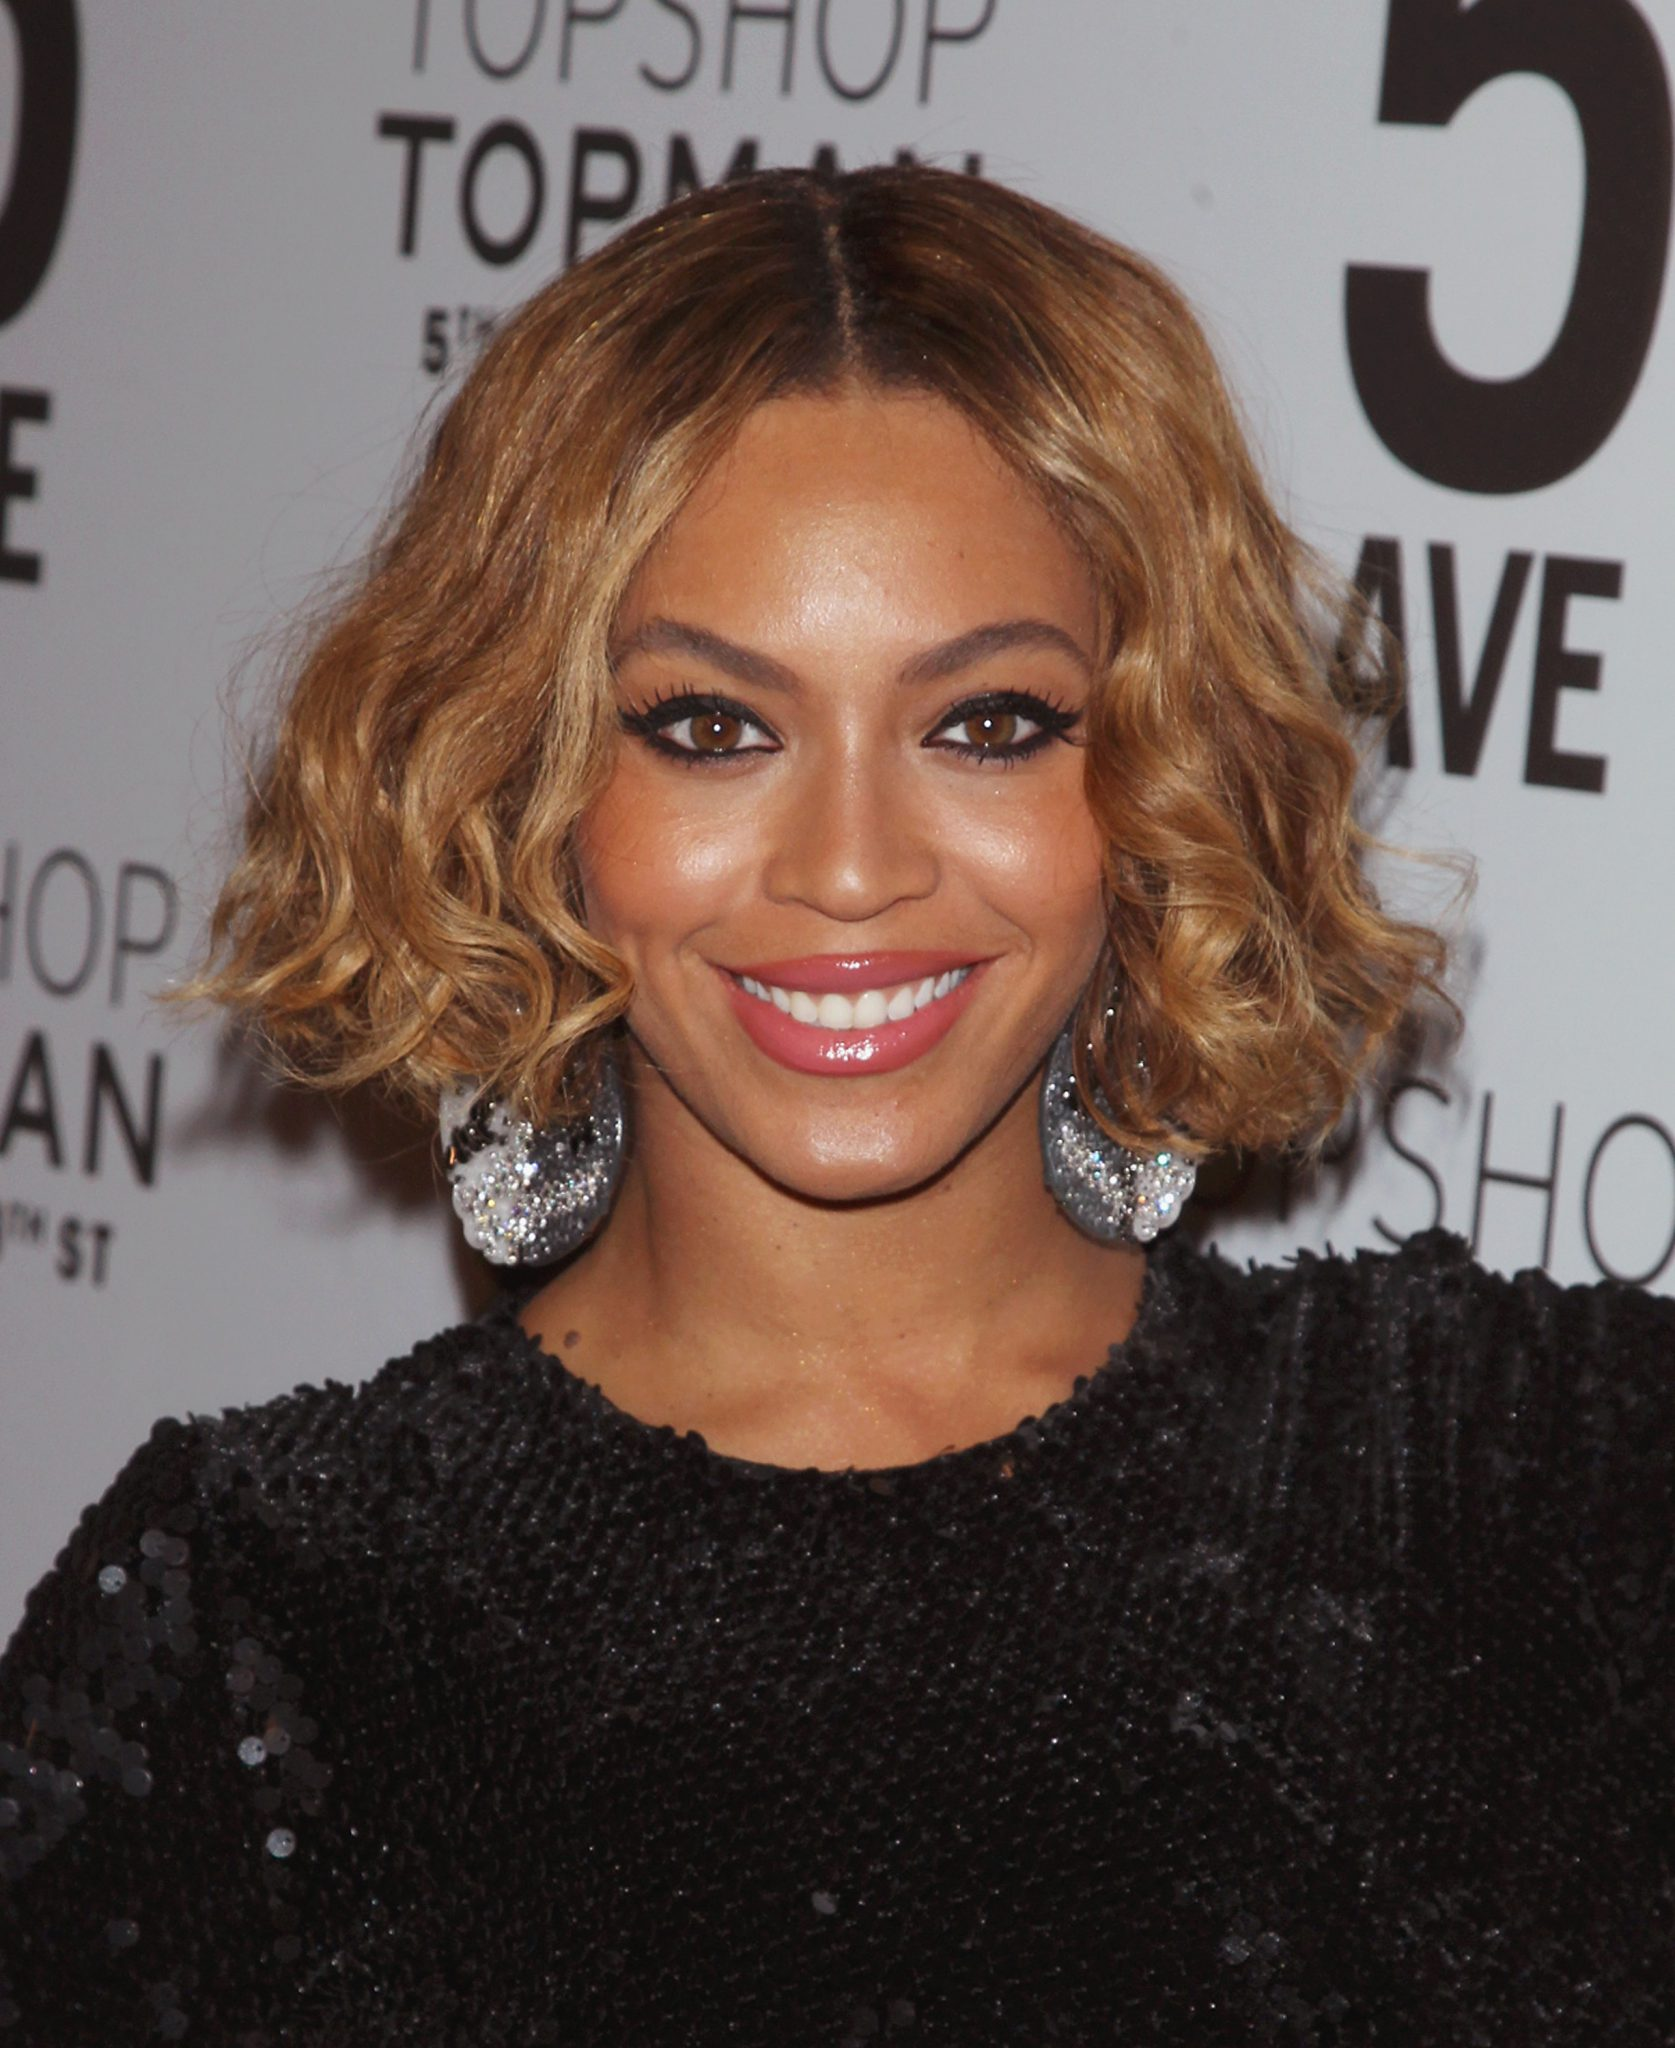 NEW YORK, NY - NOVEMBER 04:  Singer Beyonce Knowles attend the Topshop Topman New York City Flagship Opening Dinner at Grand Central Terminal on November 4, 2014 in New York City.  (Photo by Jim Spellman/WireImage)